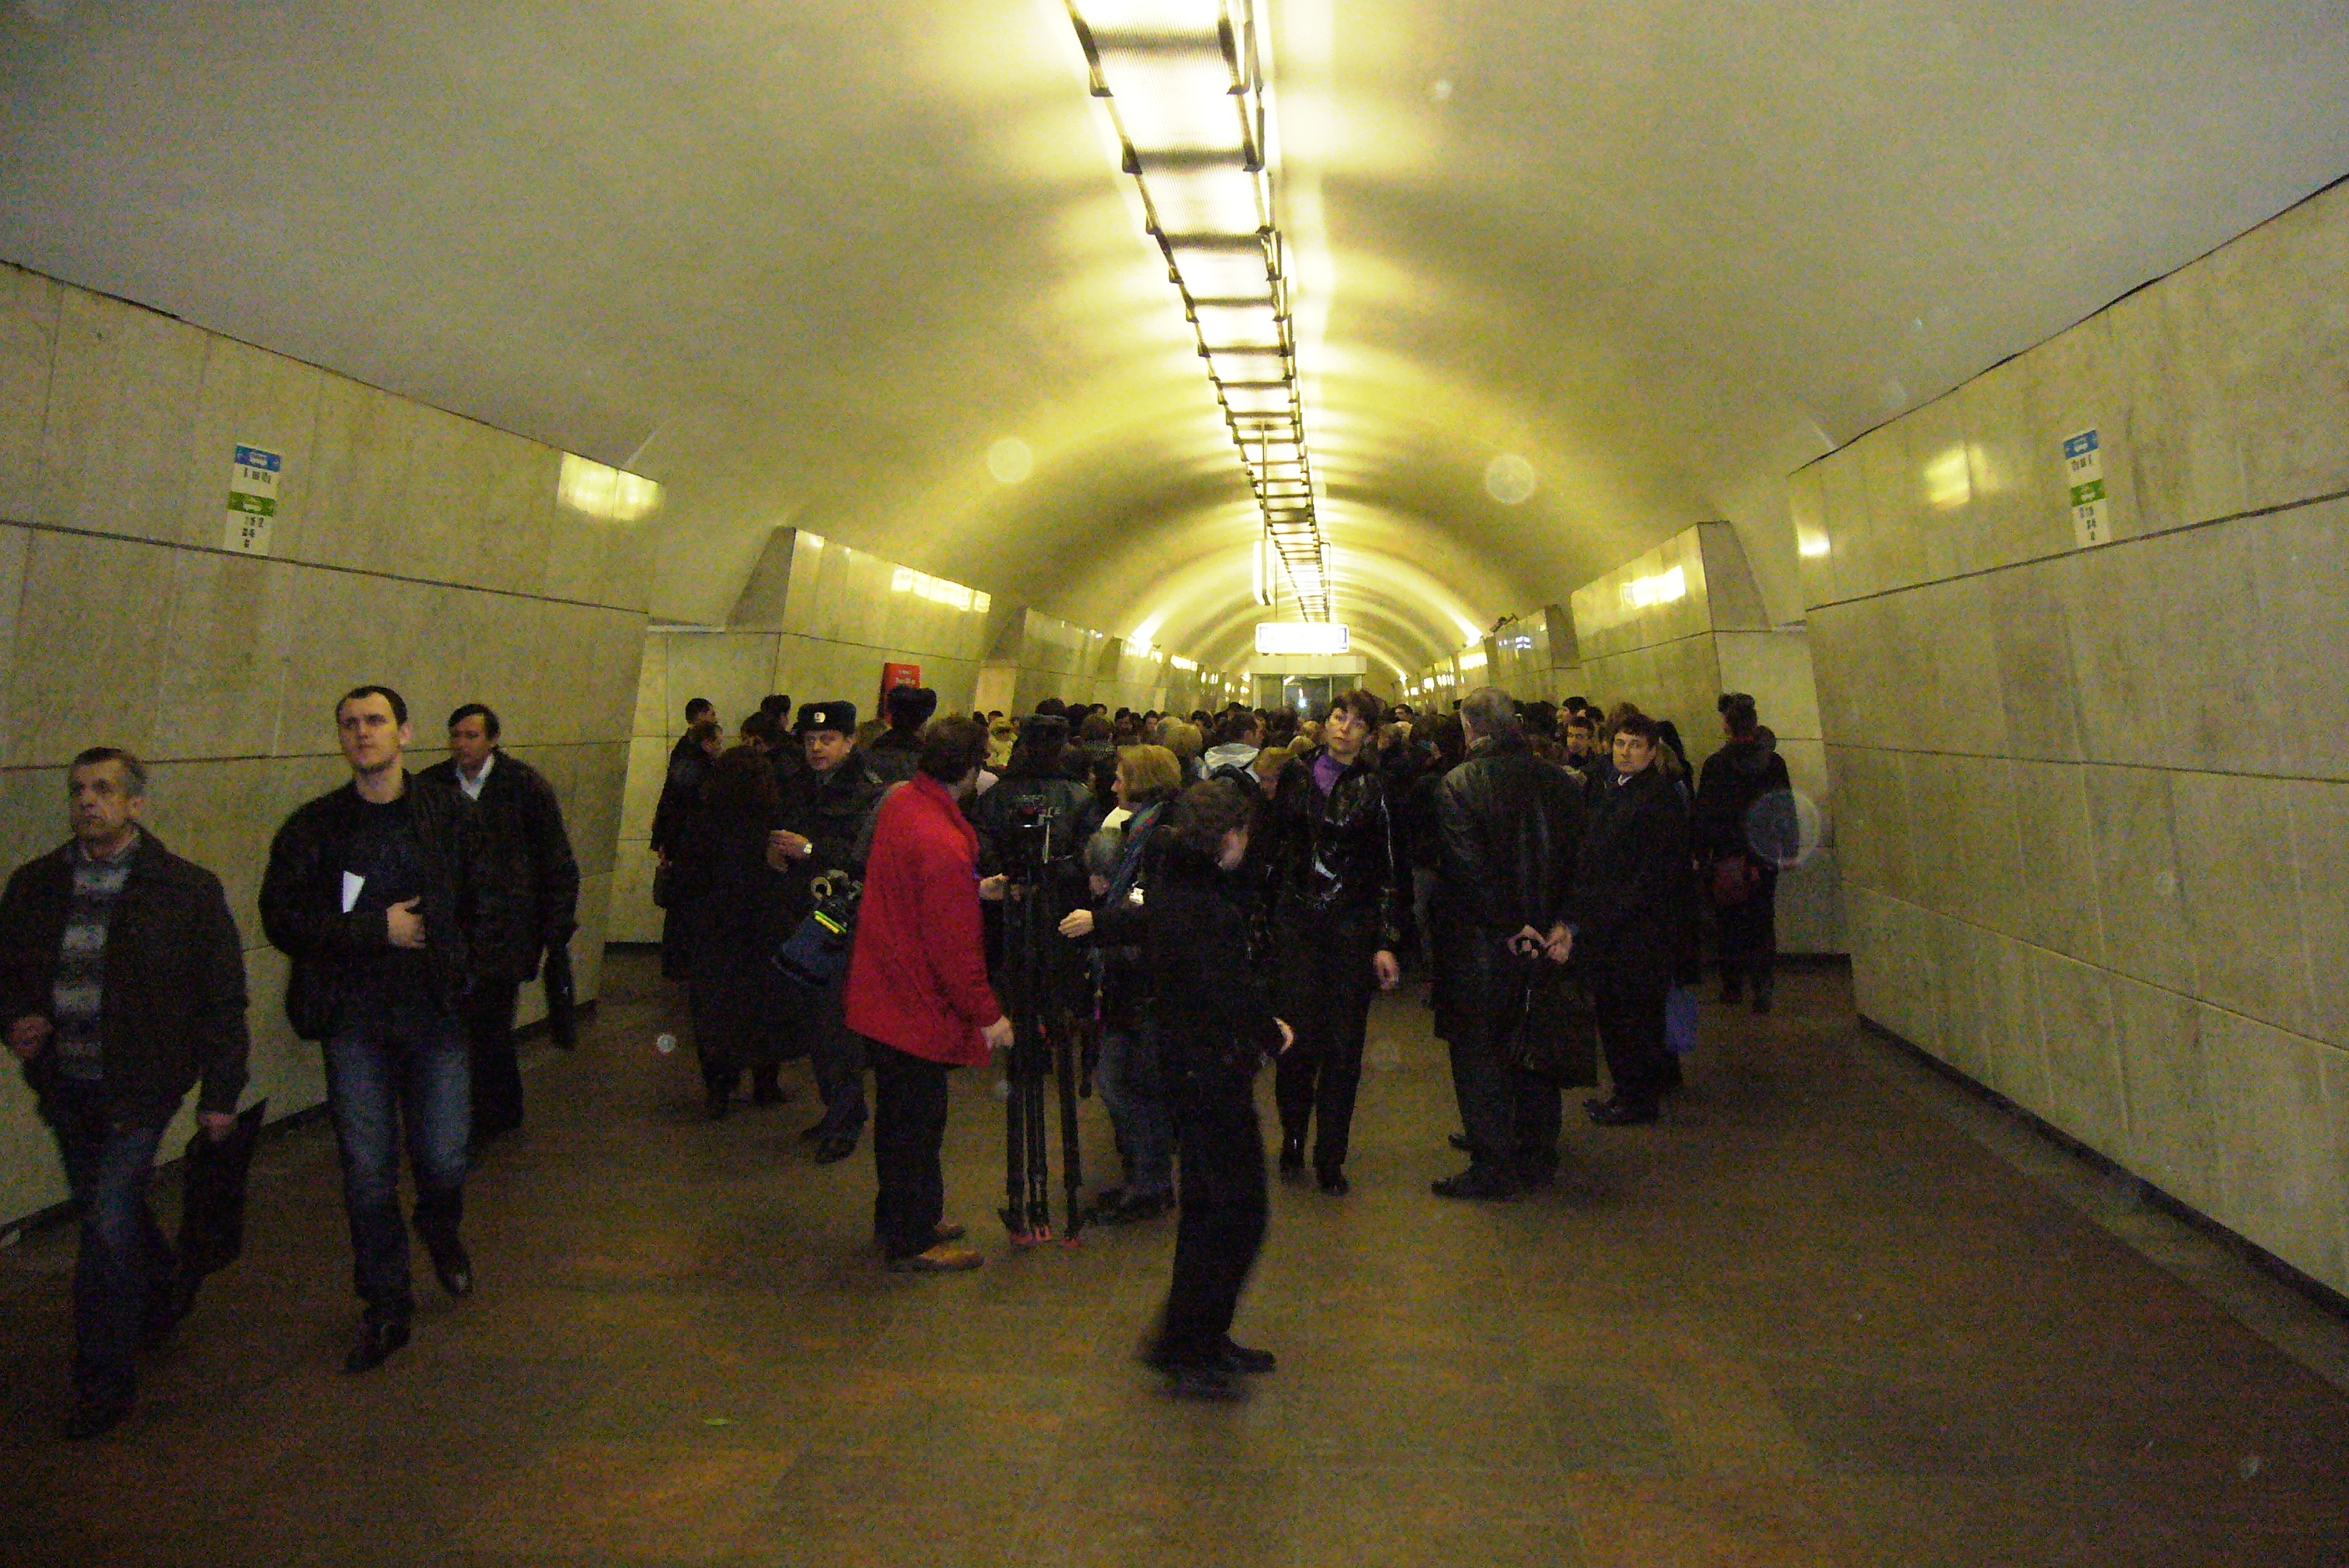 Moscow Metro Bombings | World History Project